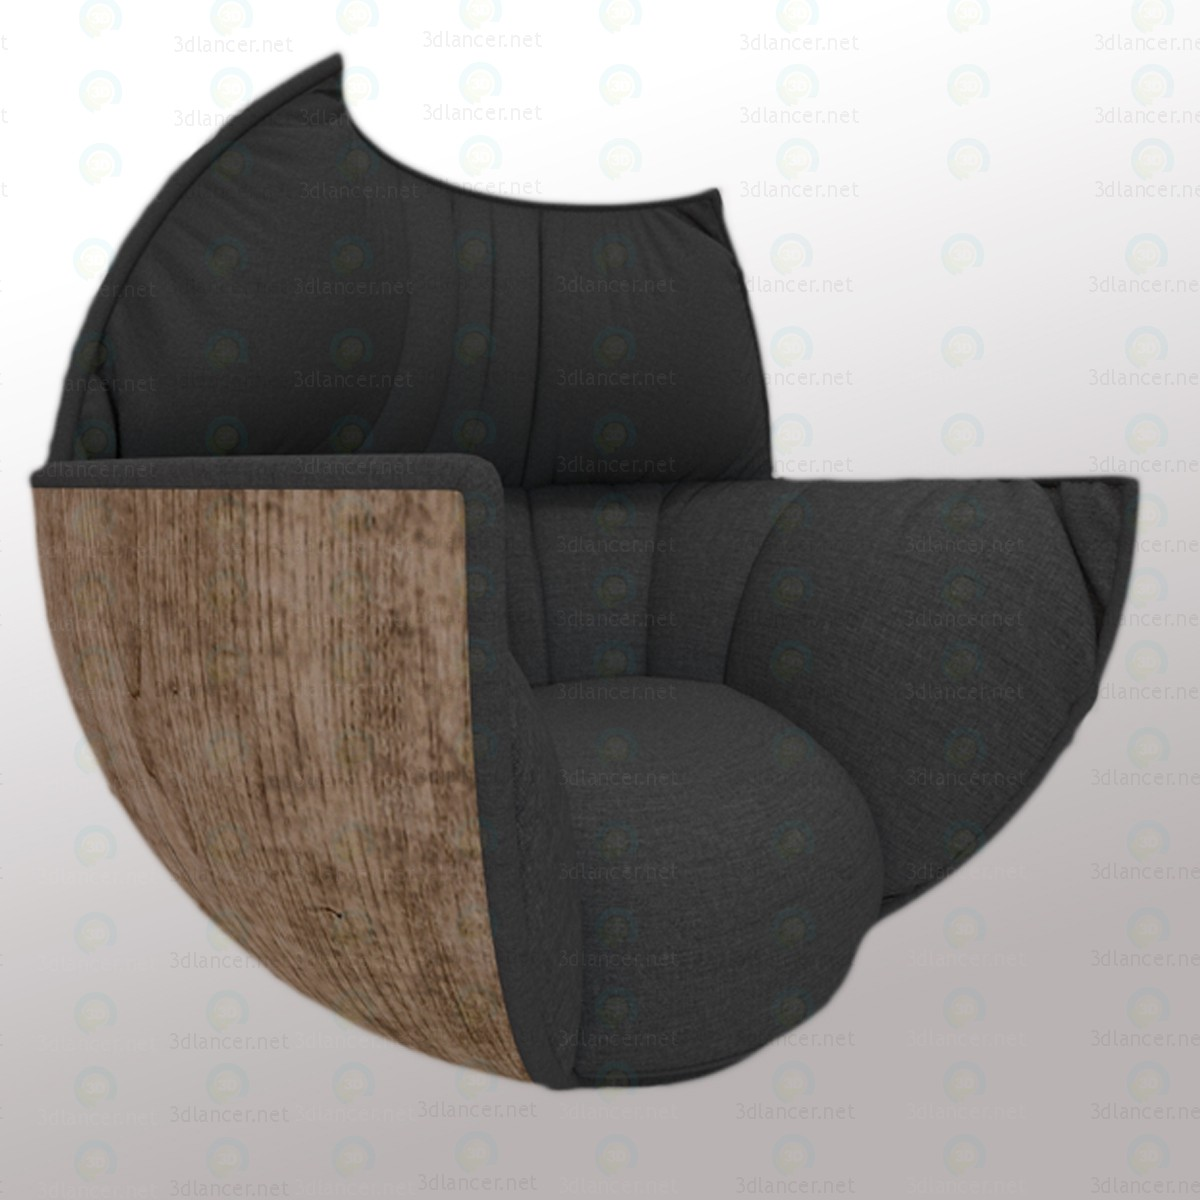 Armchair Black Tulip paid 3d model by alexvictorov1 preview